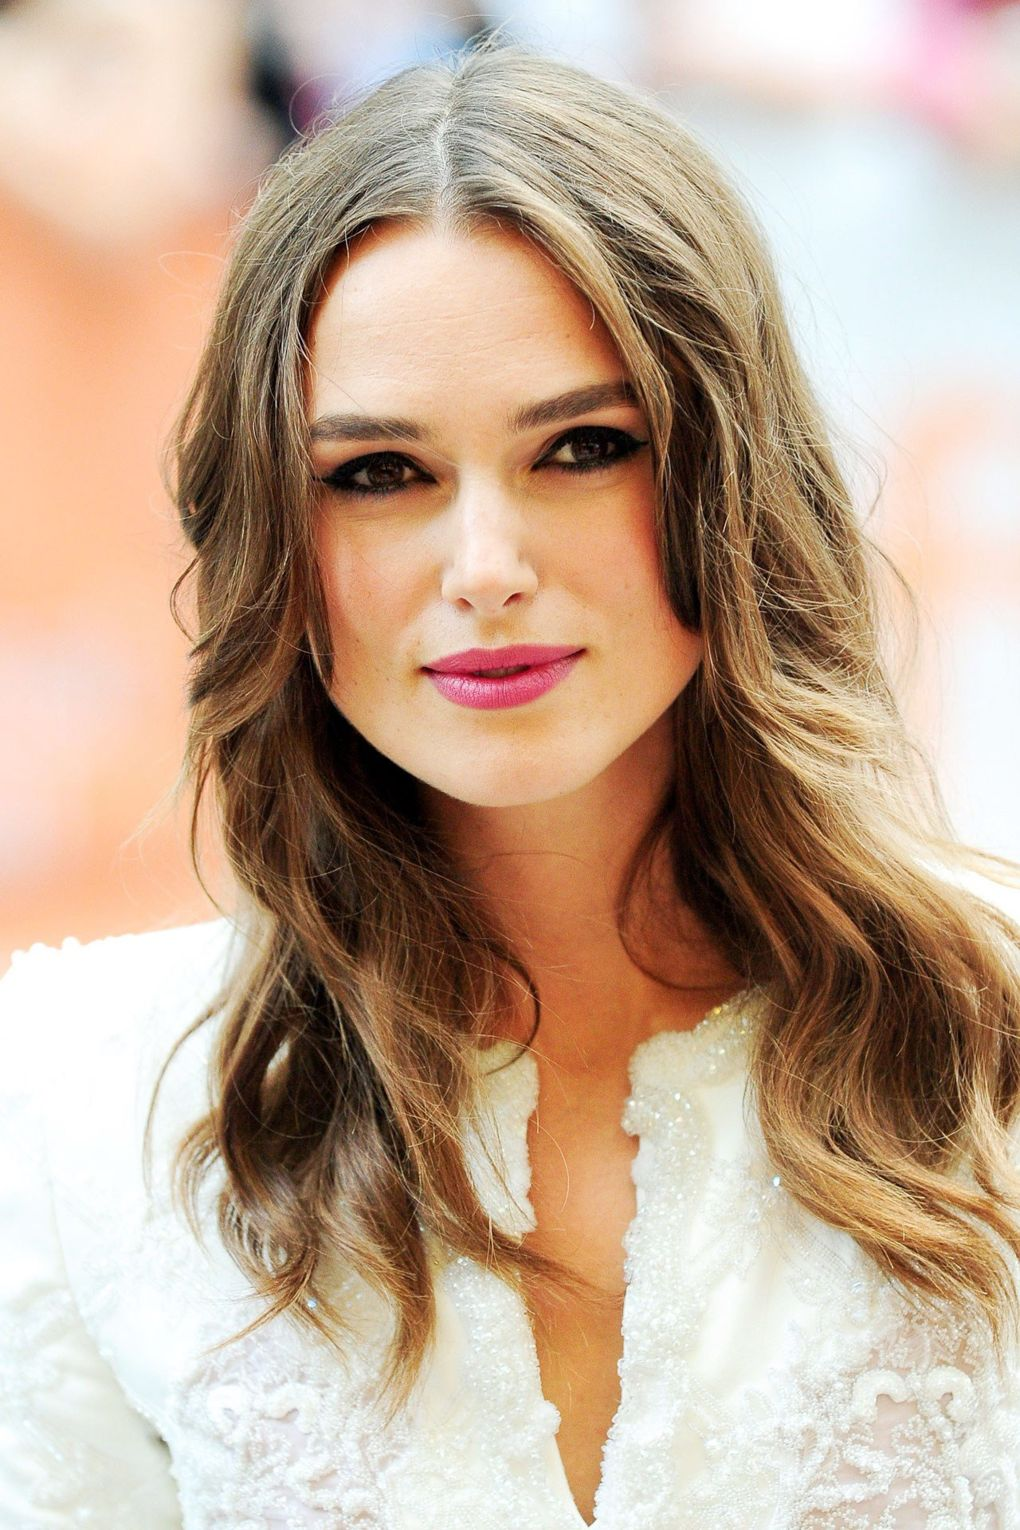 Keira-Knightley-Wiki-Biography-Age-Height-Weight-Profile-Body Measurement